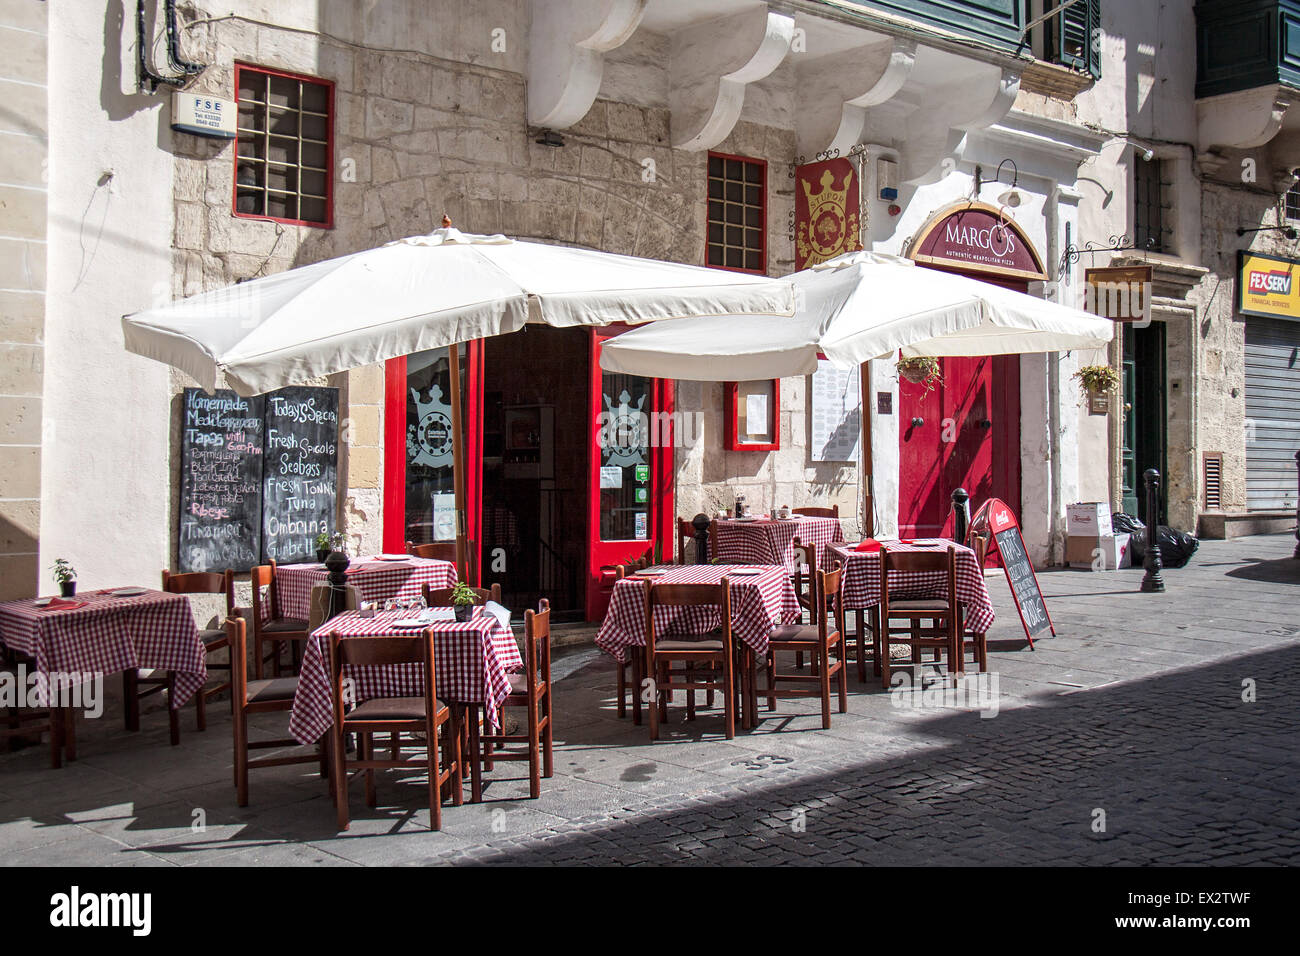 A cafe bar in  a shady street in Valletta, Malta - Stock Image